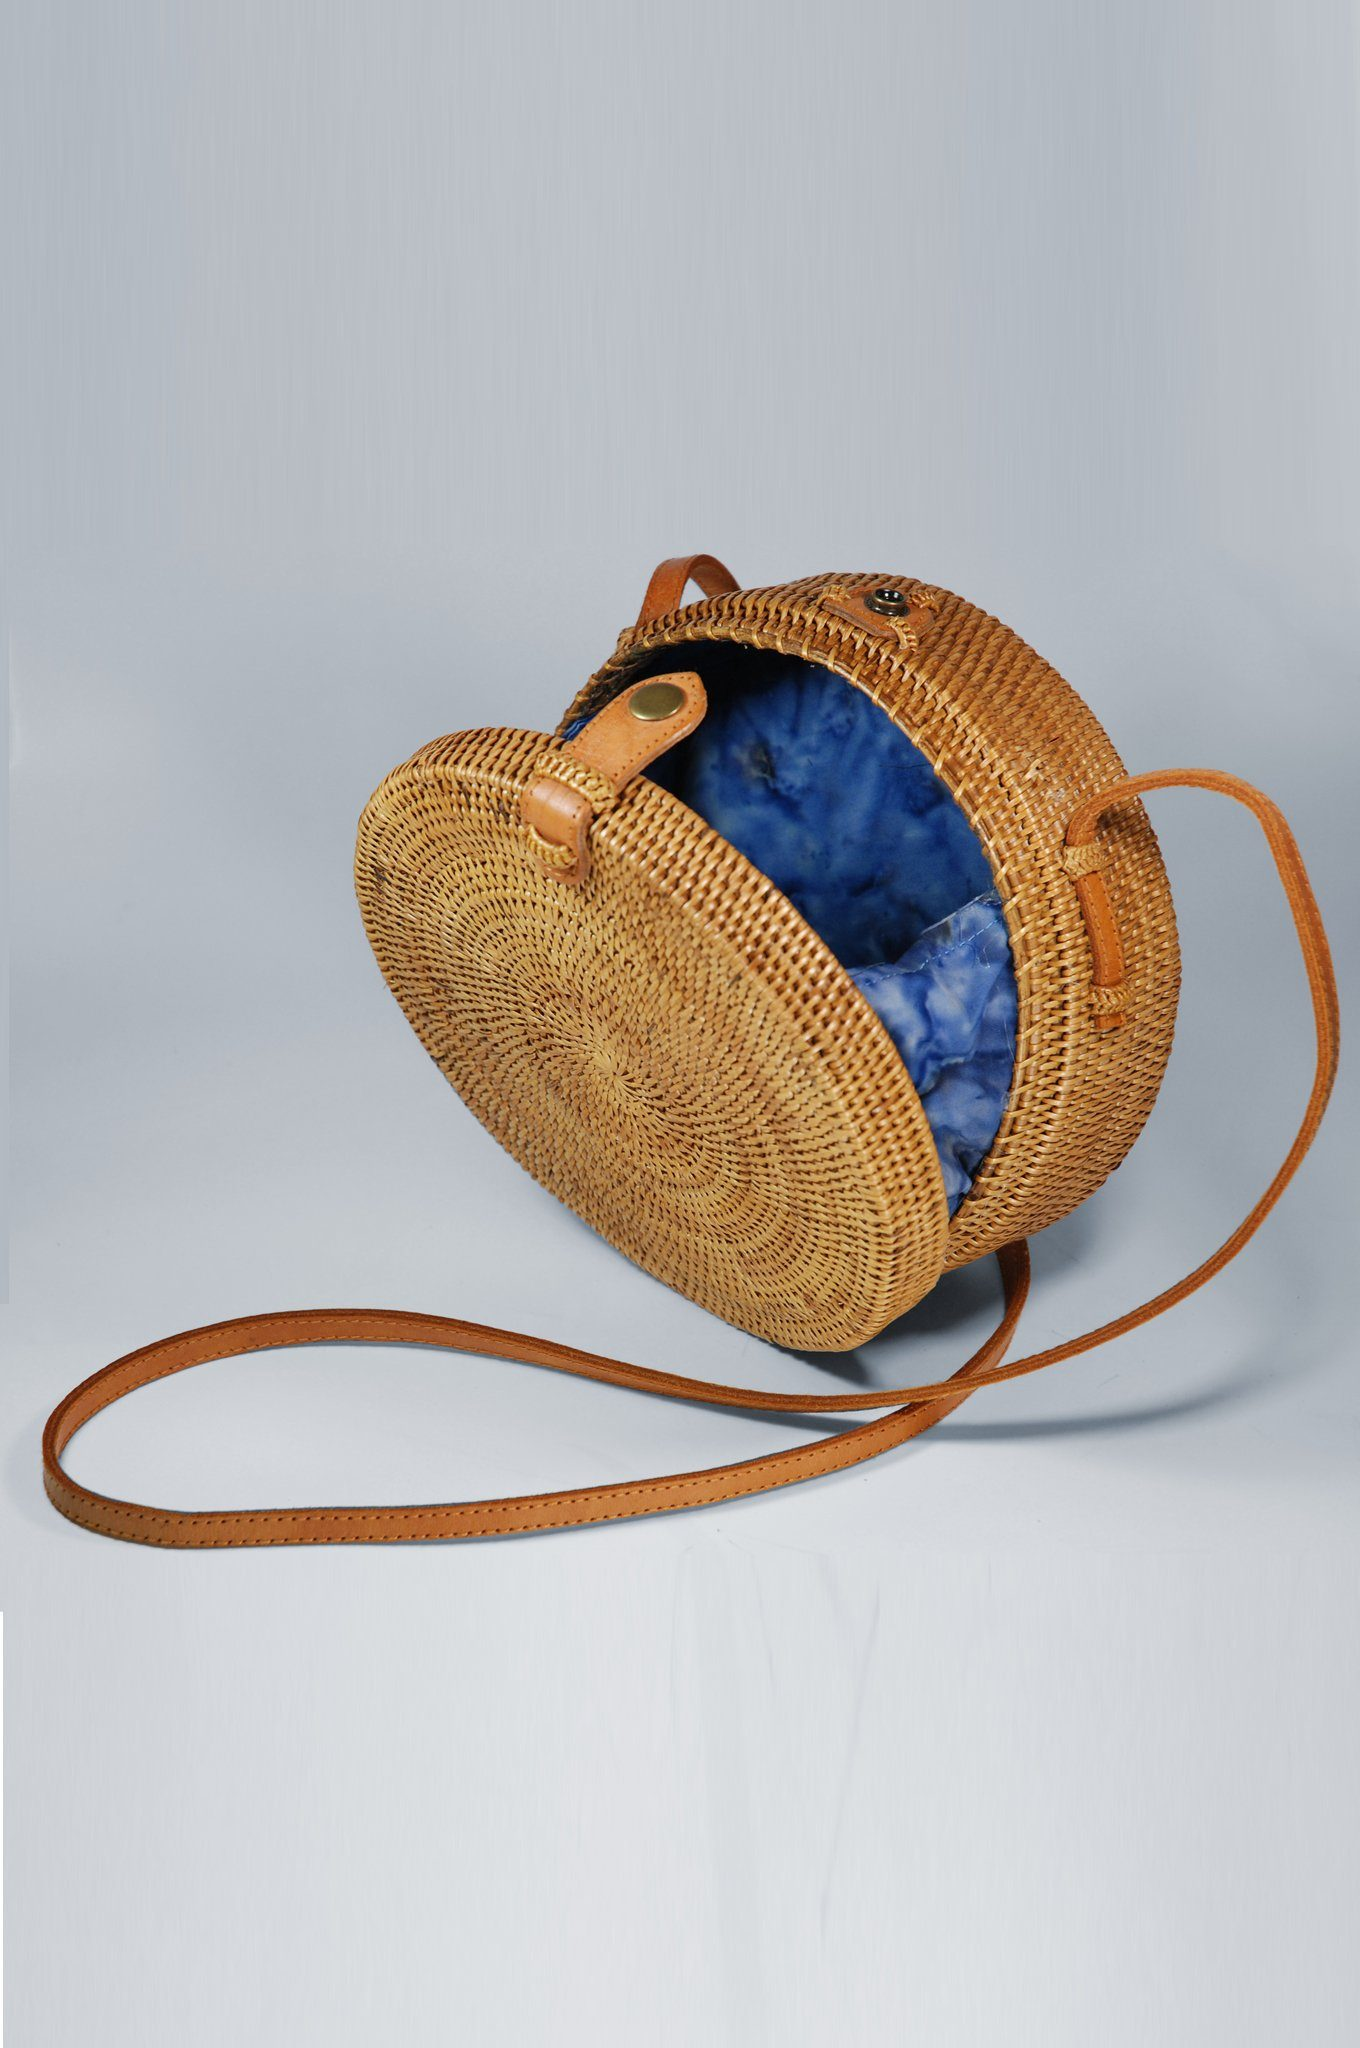 Brown Round Straw Bag | Handmade in Bali | KOMODO